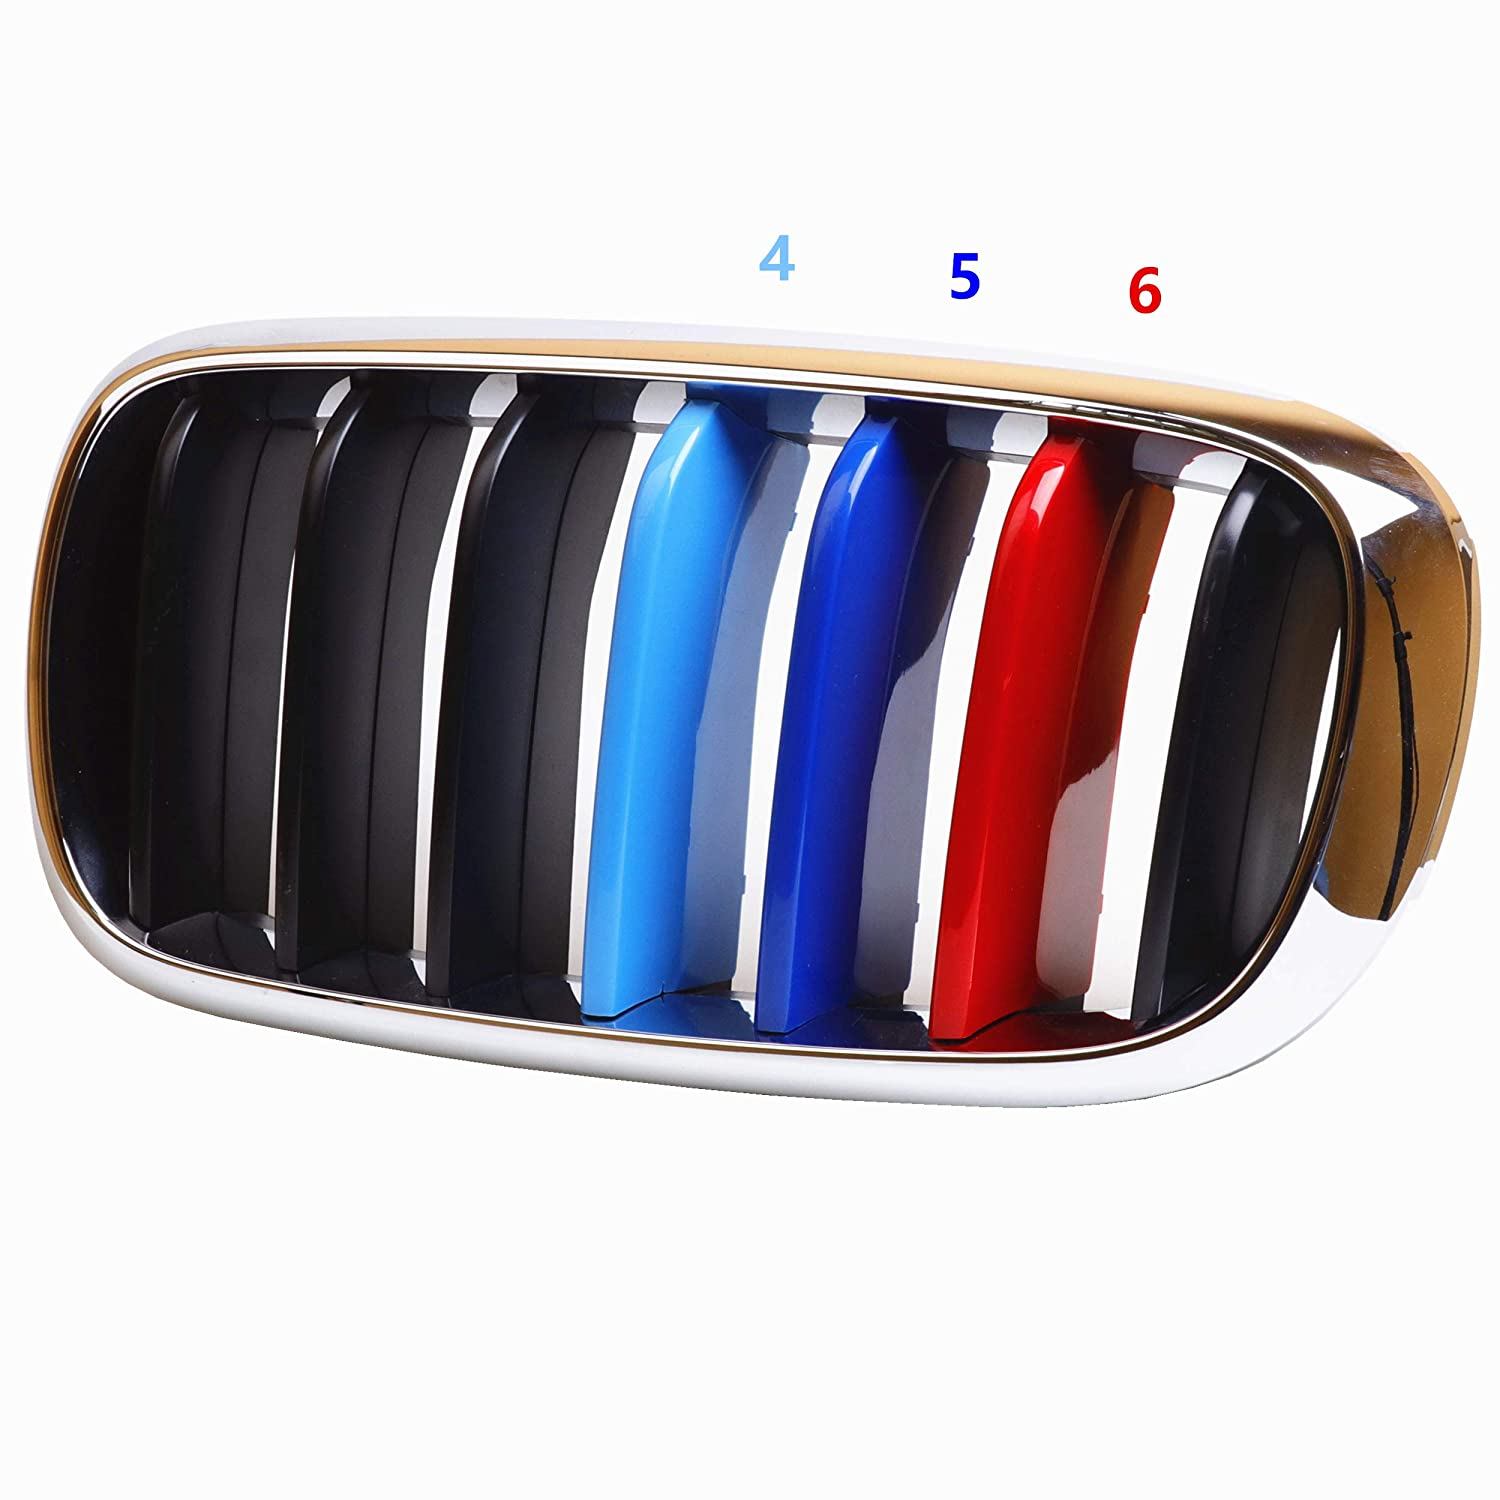 for BMW 2009-2017 Z4,9 Beams Jackey Awesome Exact Fit //////M-Colored Grille Insert Trims for 2009-2017 BMW Z4 with M-Performance Black Kidney Grill